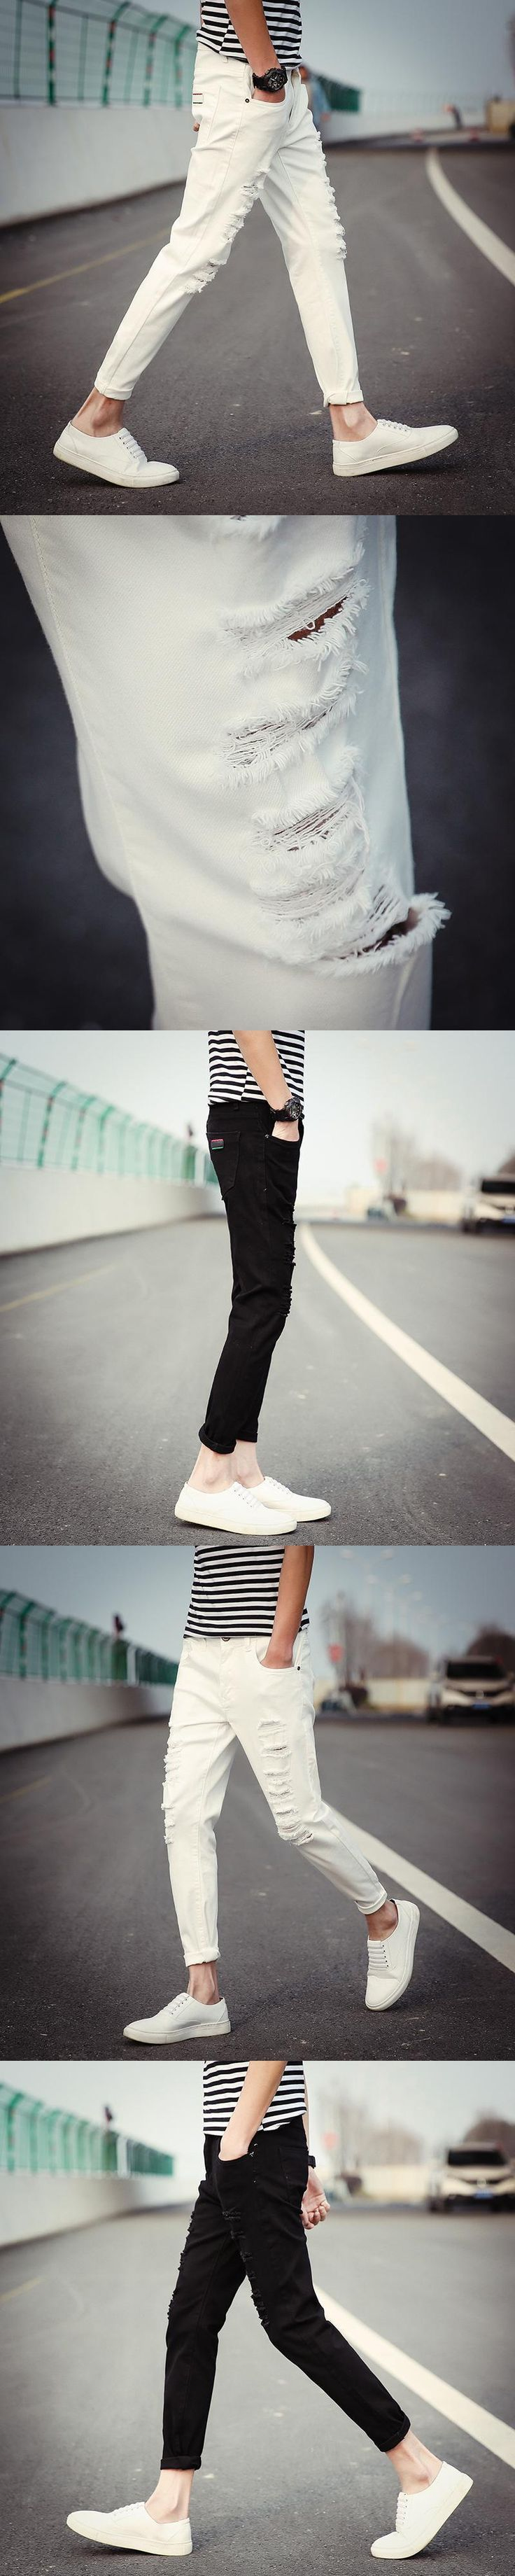 Mens Skinny Jeans Runway Distressed Slim Nine Pants Ripped Jeans with Holes Denim Biker Jeans Washed White Jeans in Men's Jeans